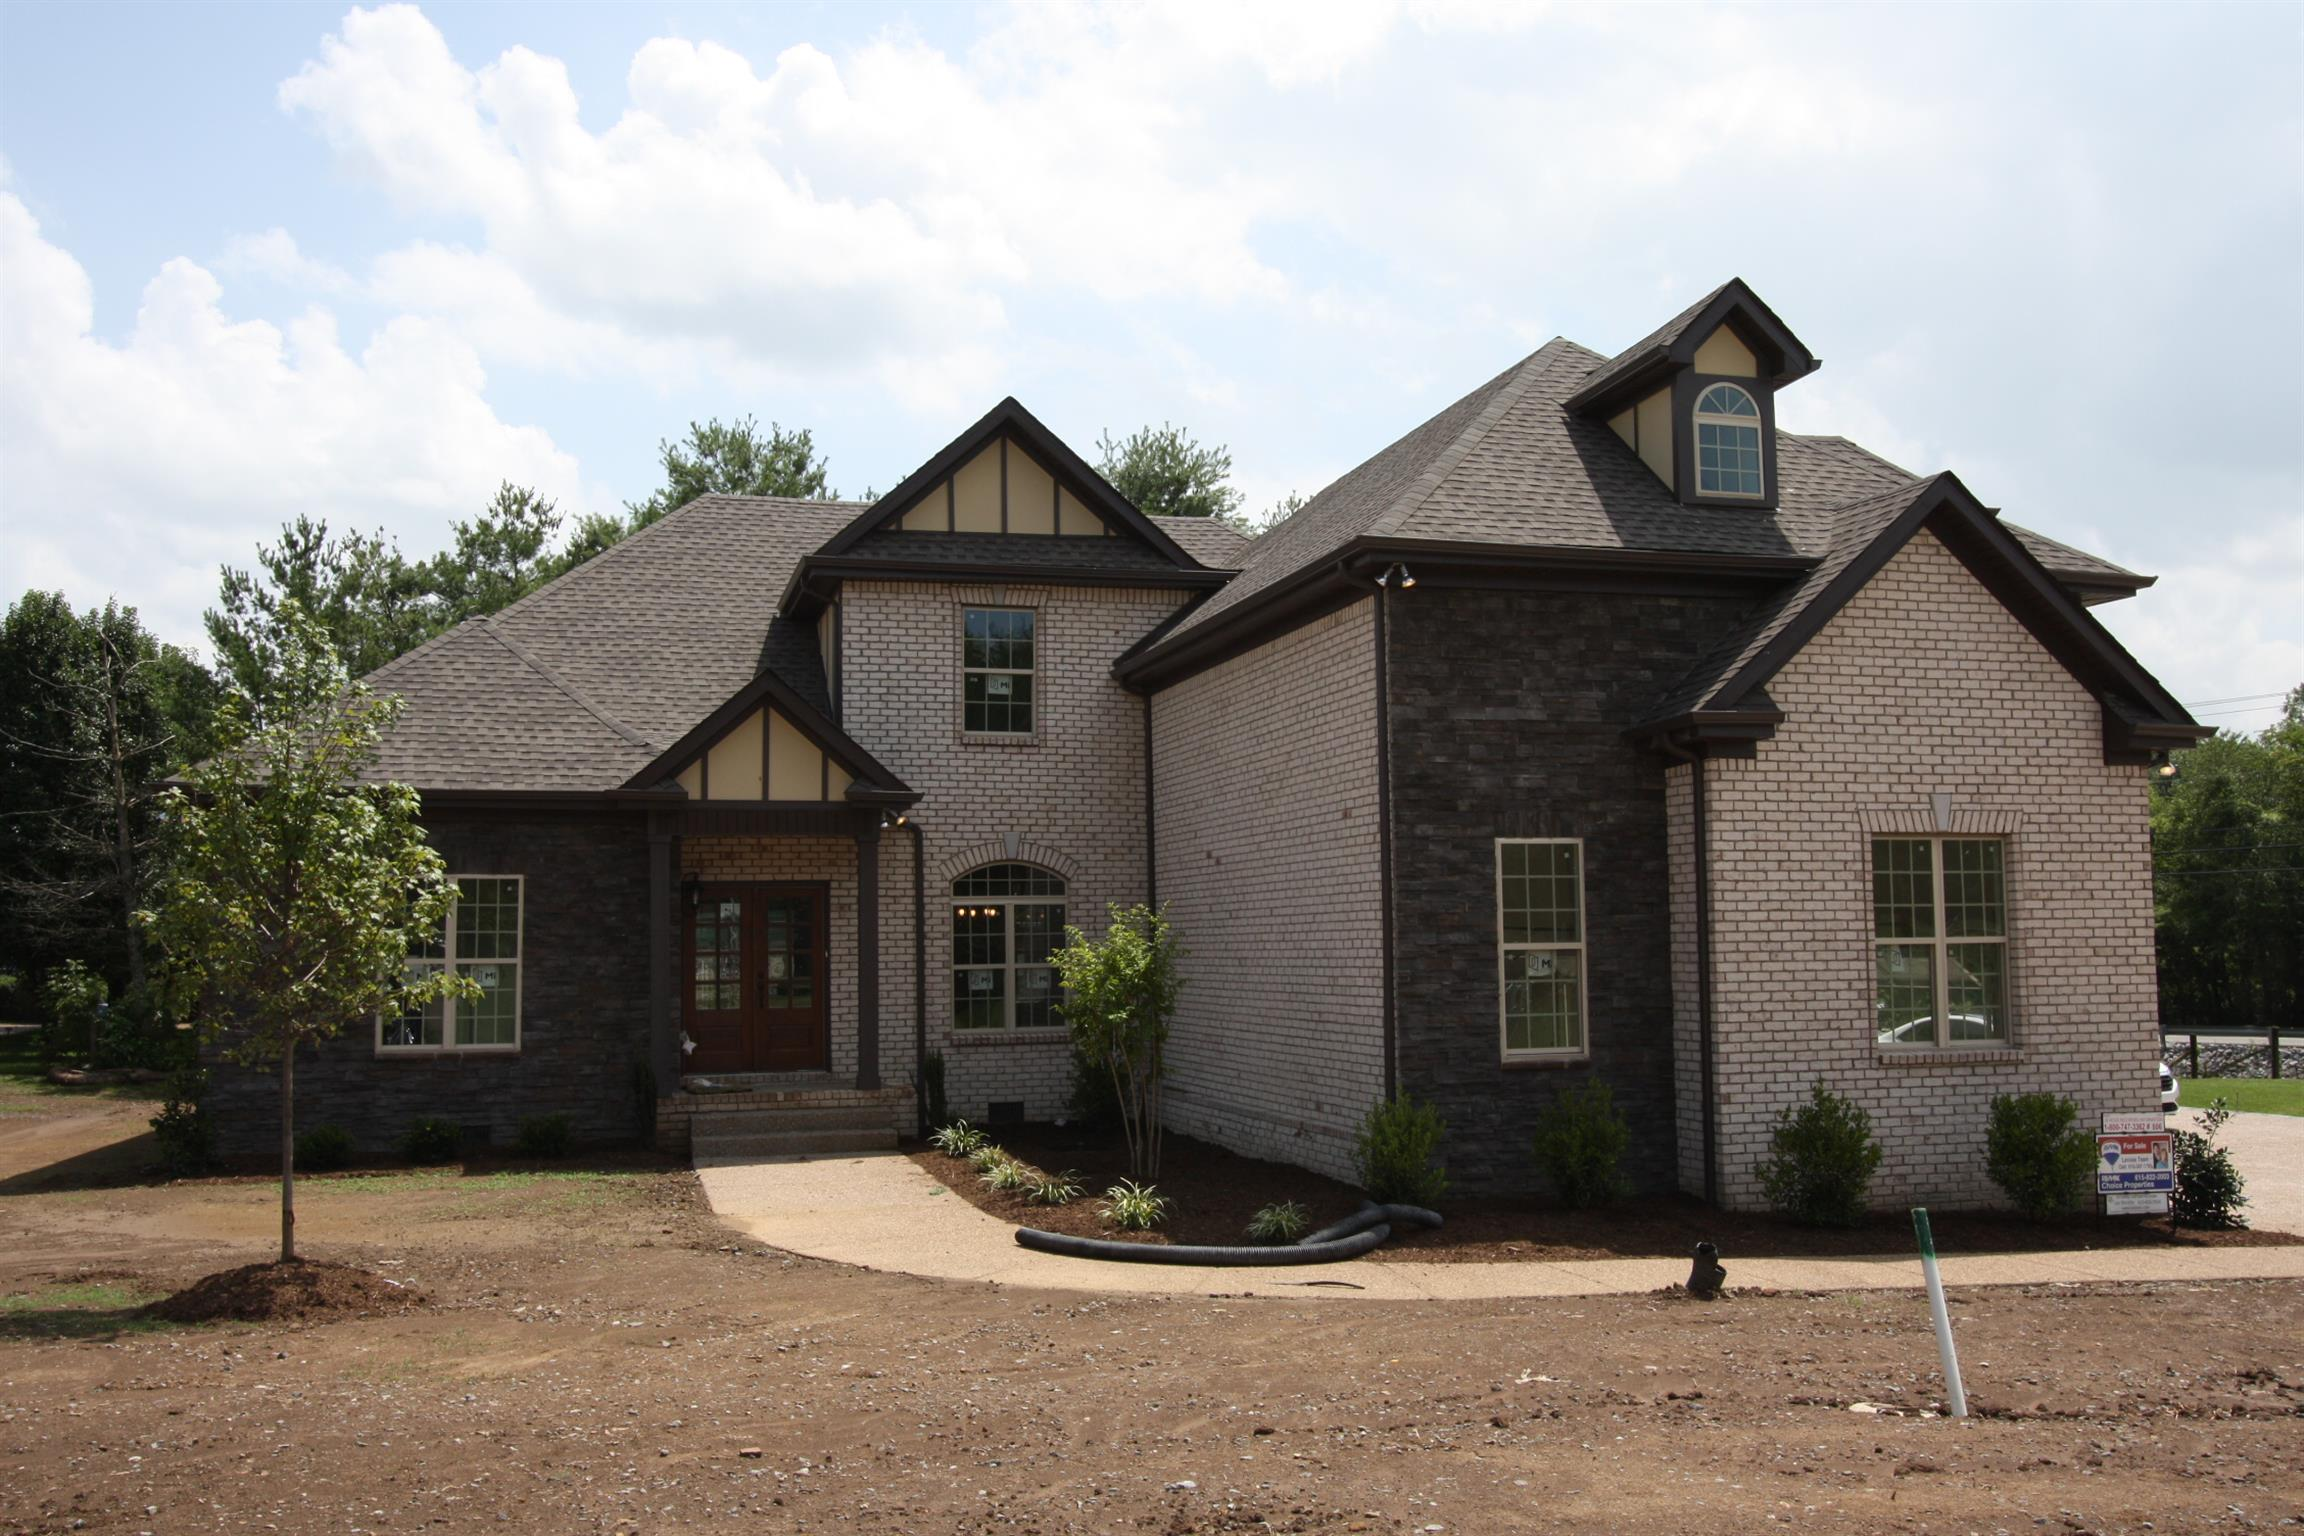 2006 Eagle View Rd 37075 - One of Hendersonville Homes for Sale